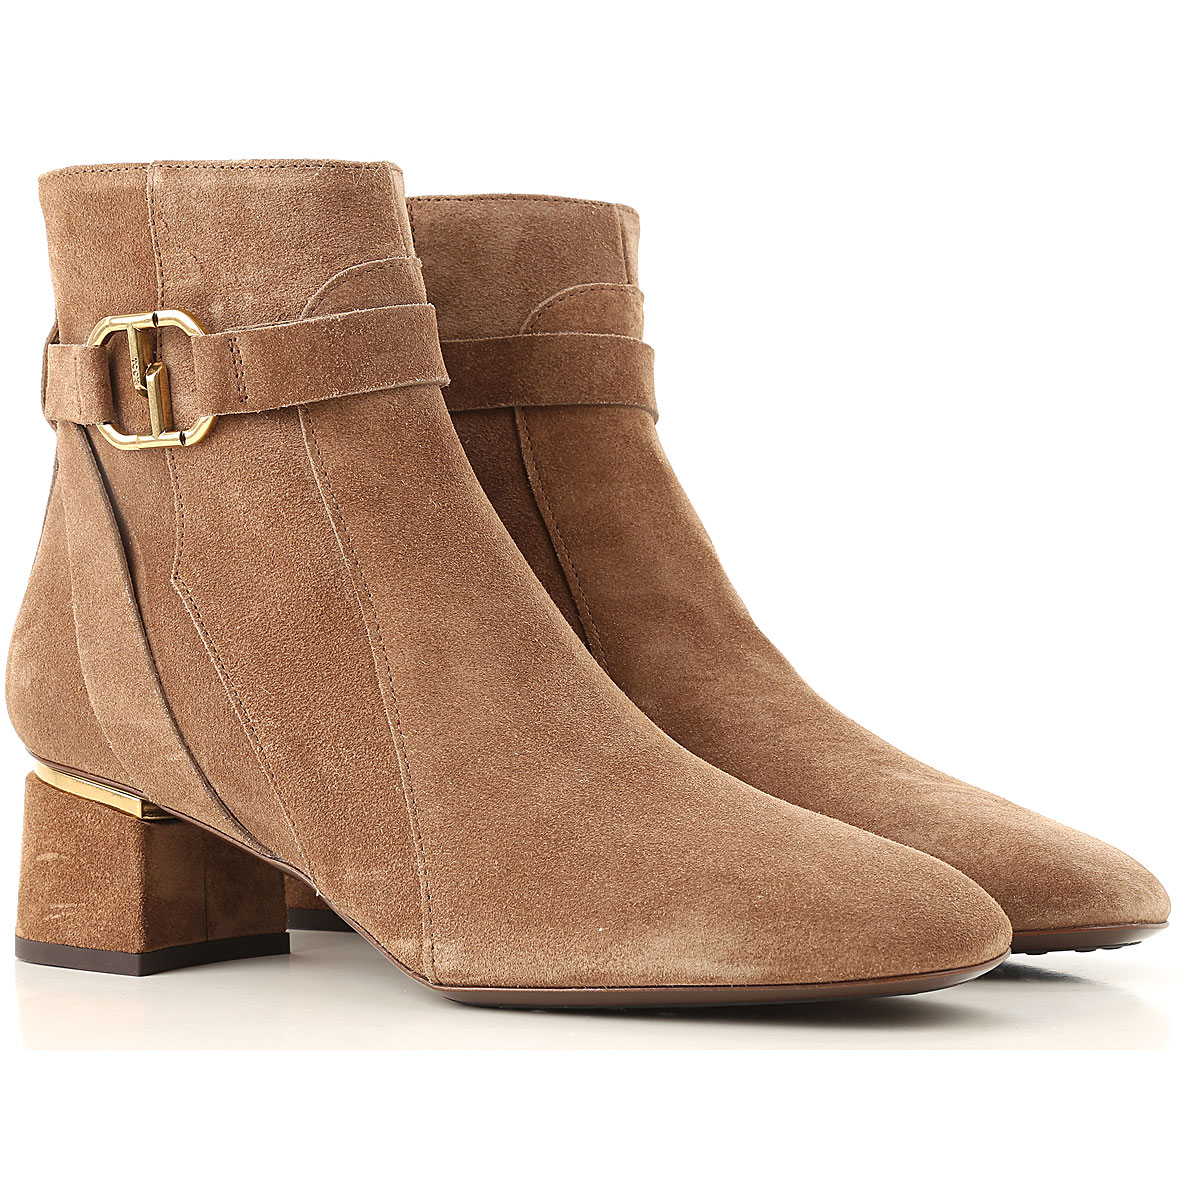 Tods Boots for Women, Booties On Sale, Taupe, Suede leather, 2017, 10 6.5 7 8 8.5